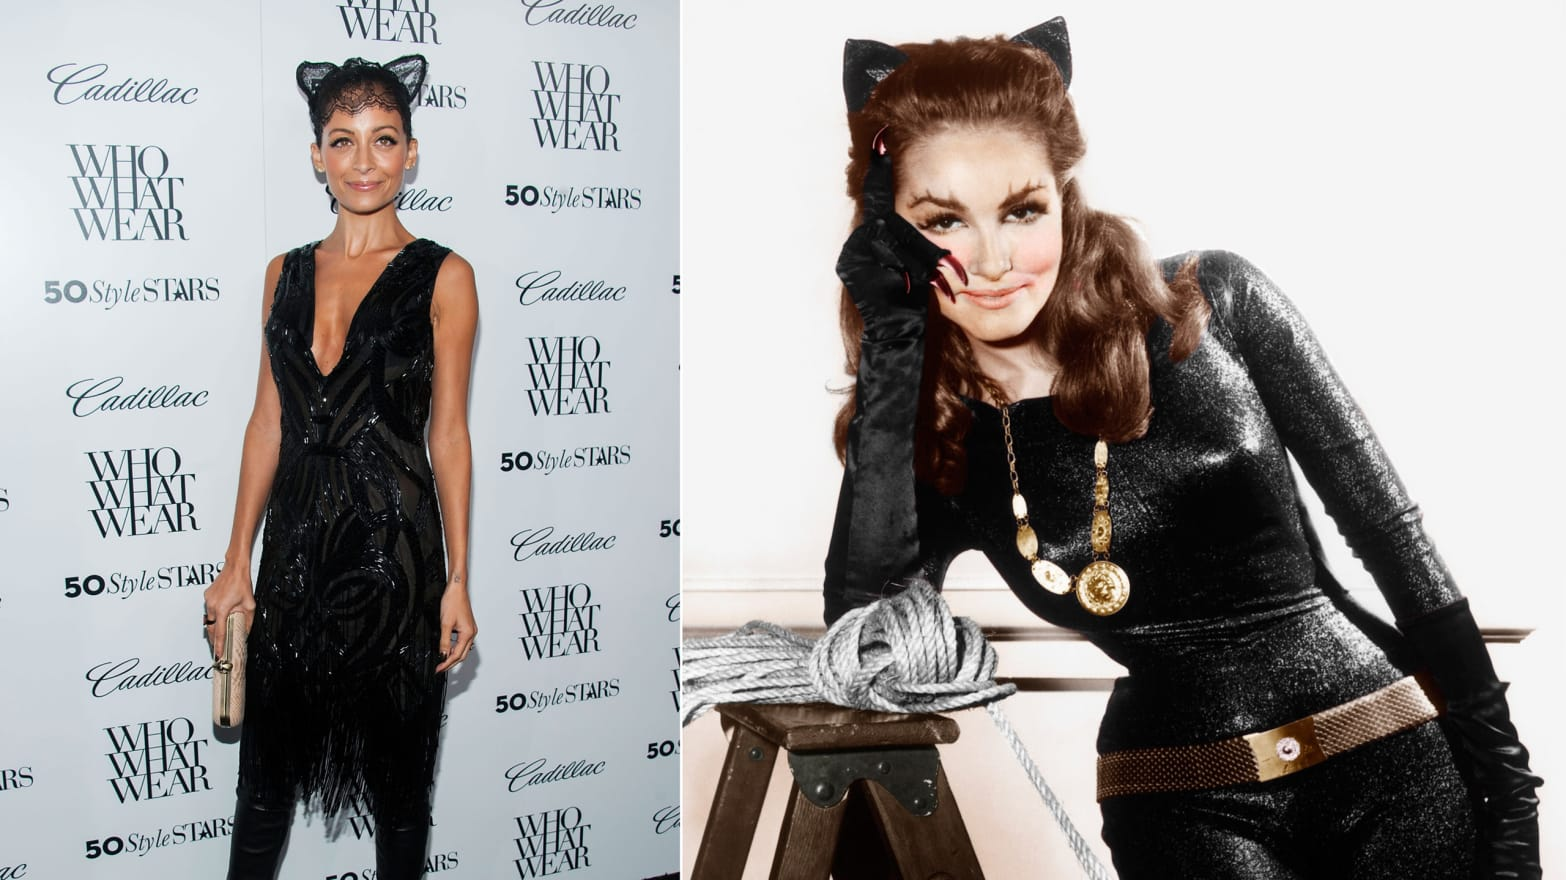 264446ee991b7 From Miley Cyrus to Lady Gaga, Stars Who Look Like They re Dressed For  Halloween (Photos)